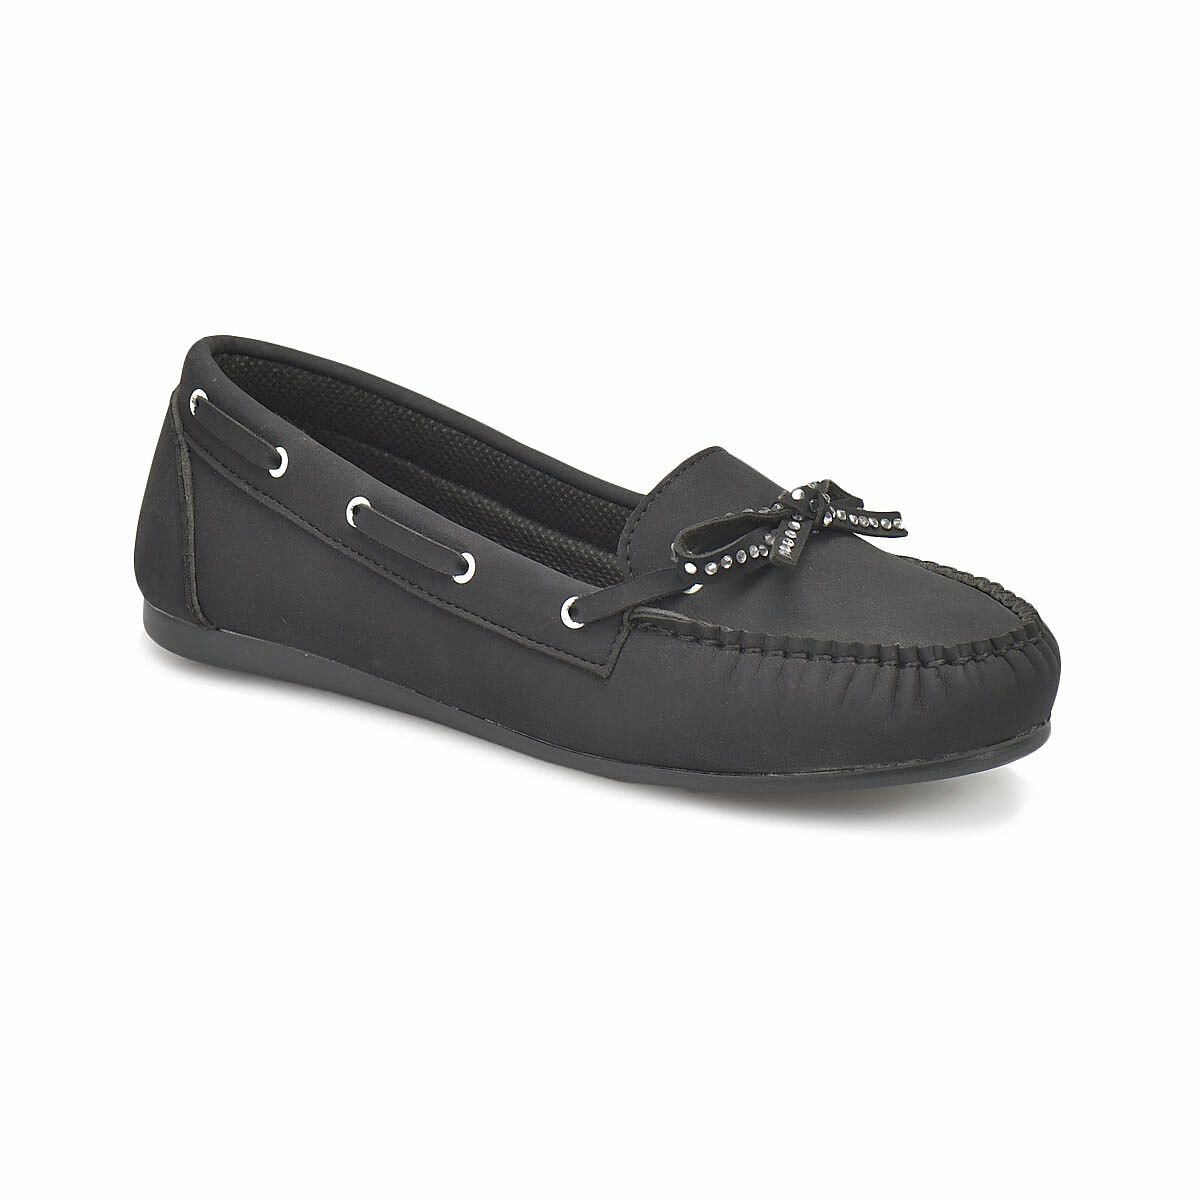 FLO DS18020 Black Women Loafer Shoes Miss F